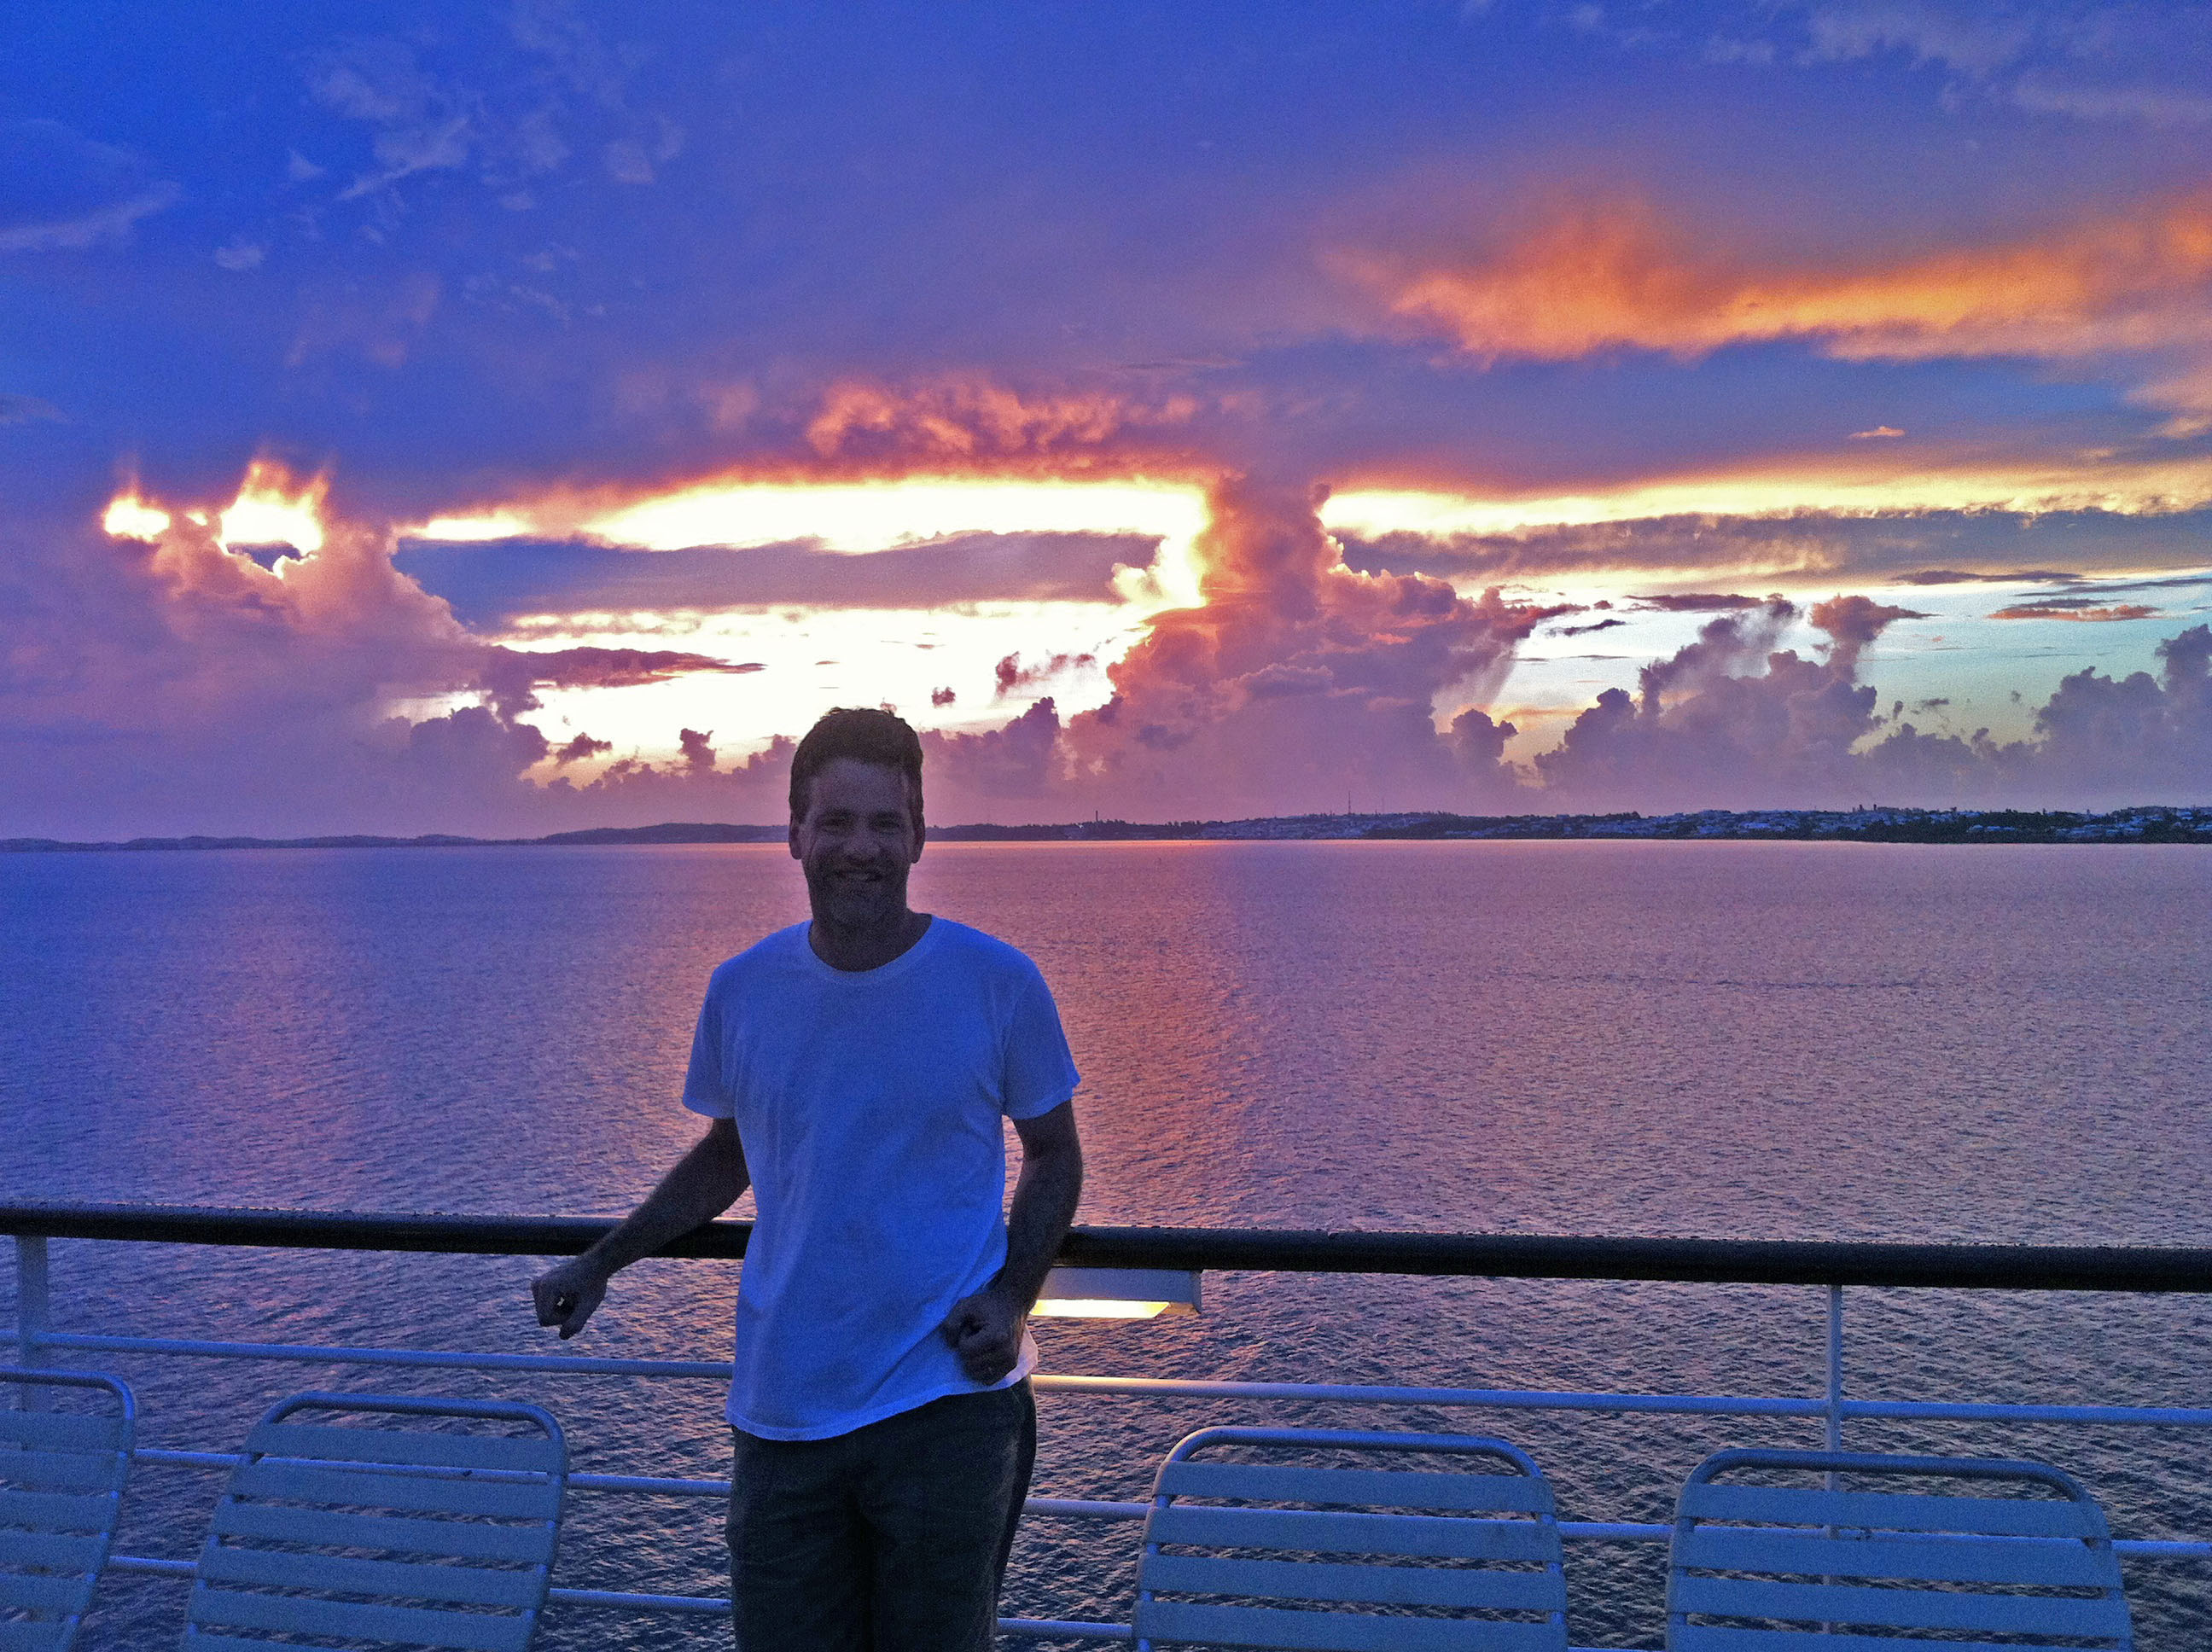 Dawn from the top deck of a cruise ship in the Atlantic.